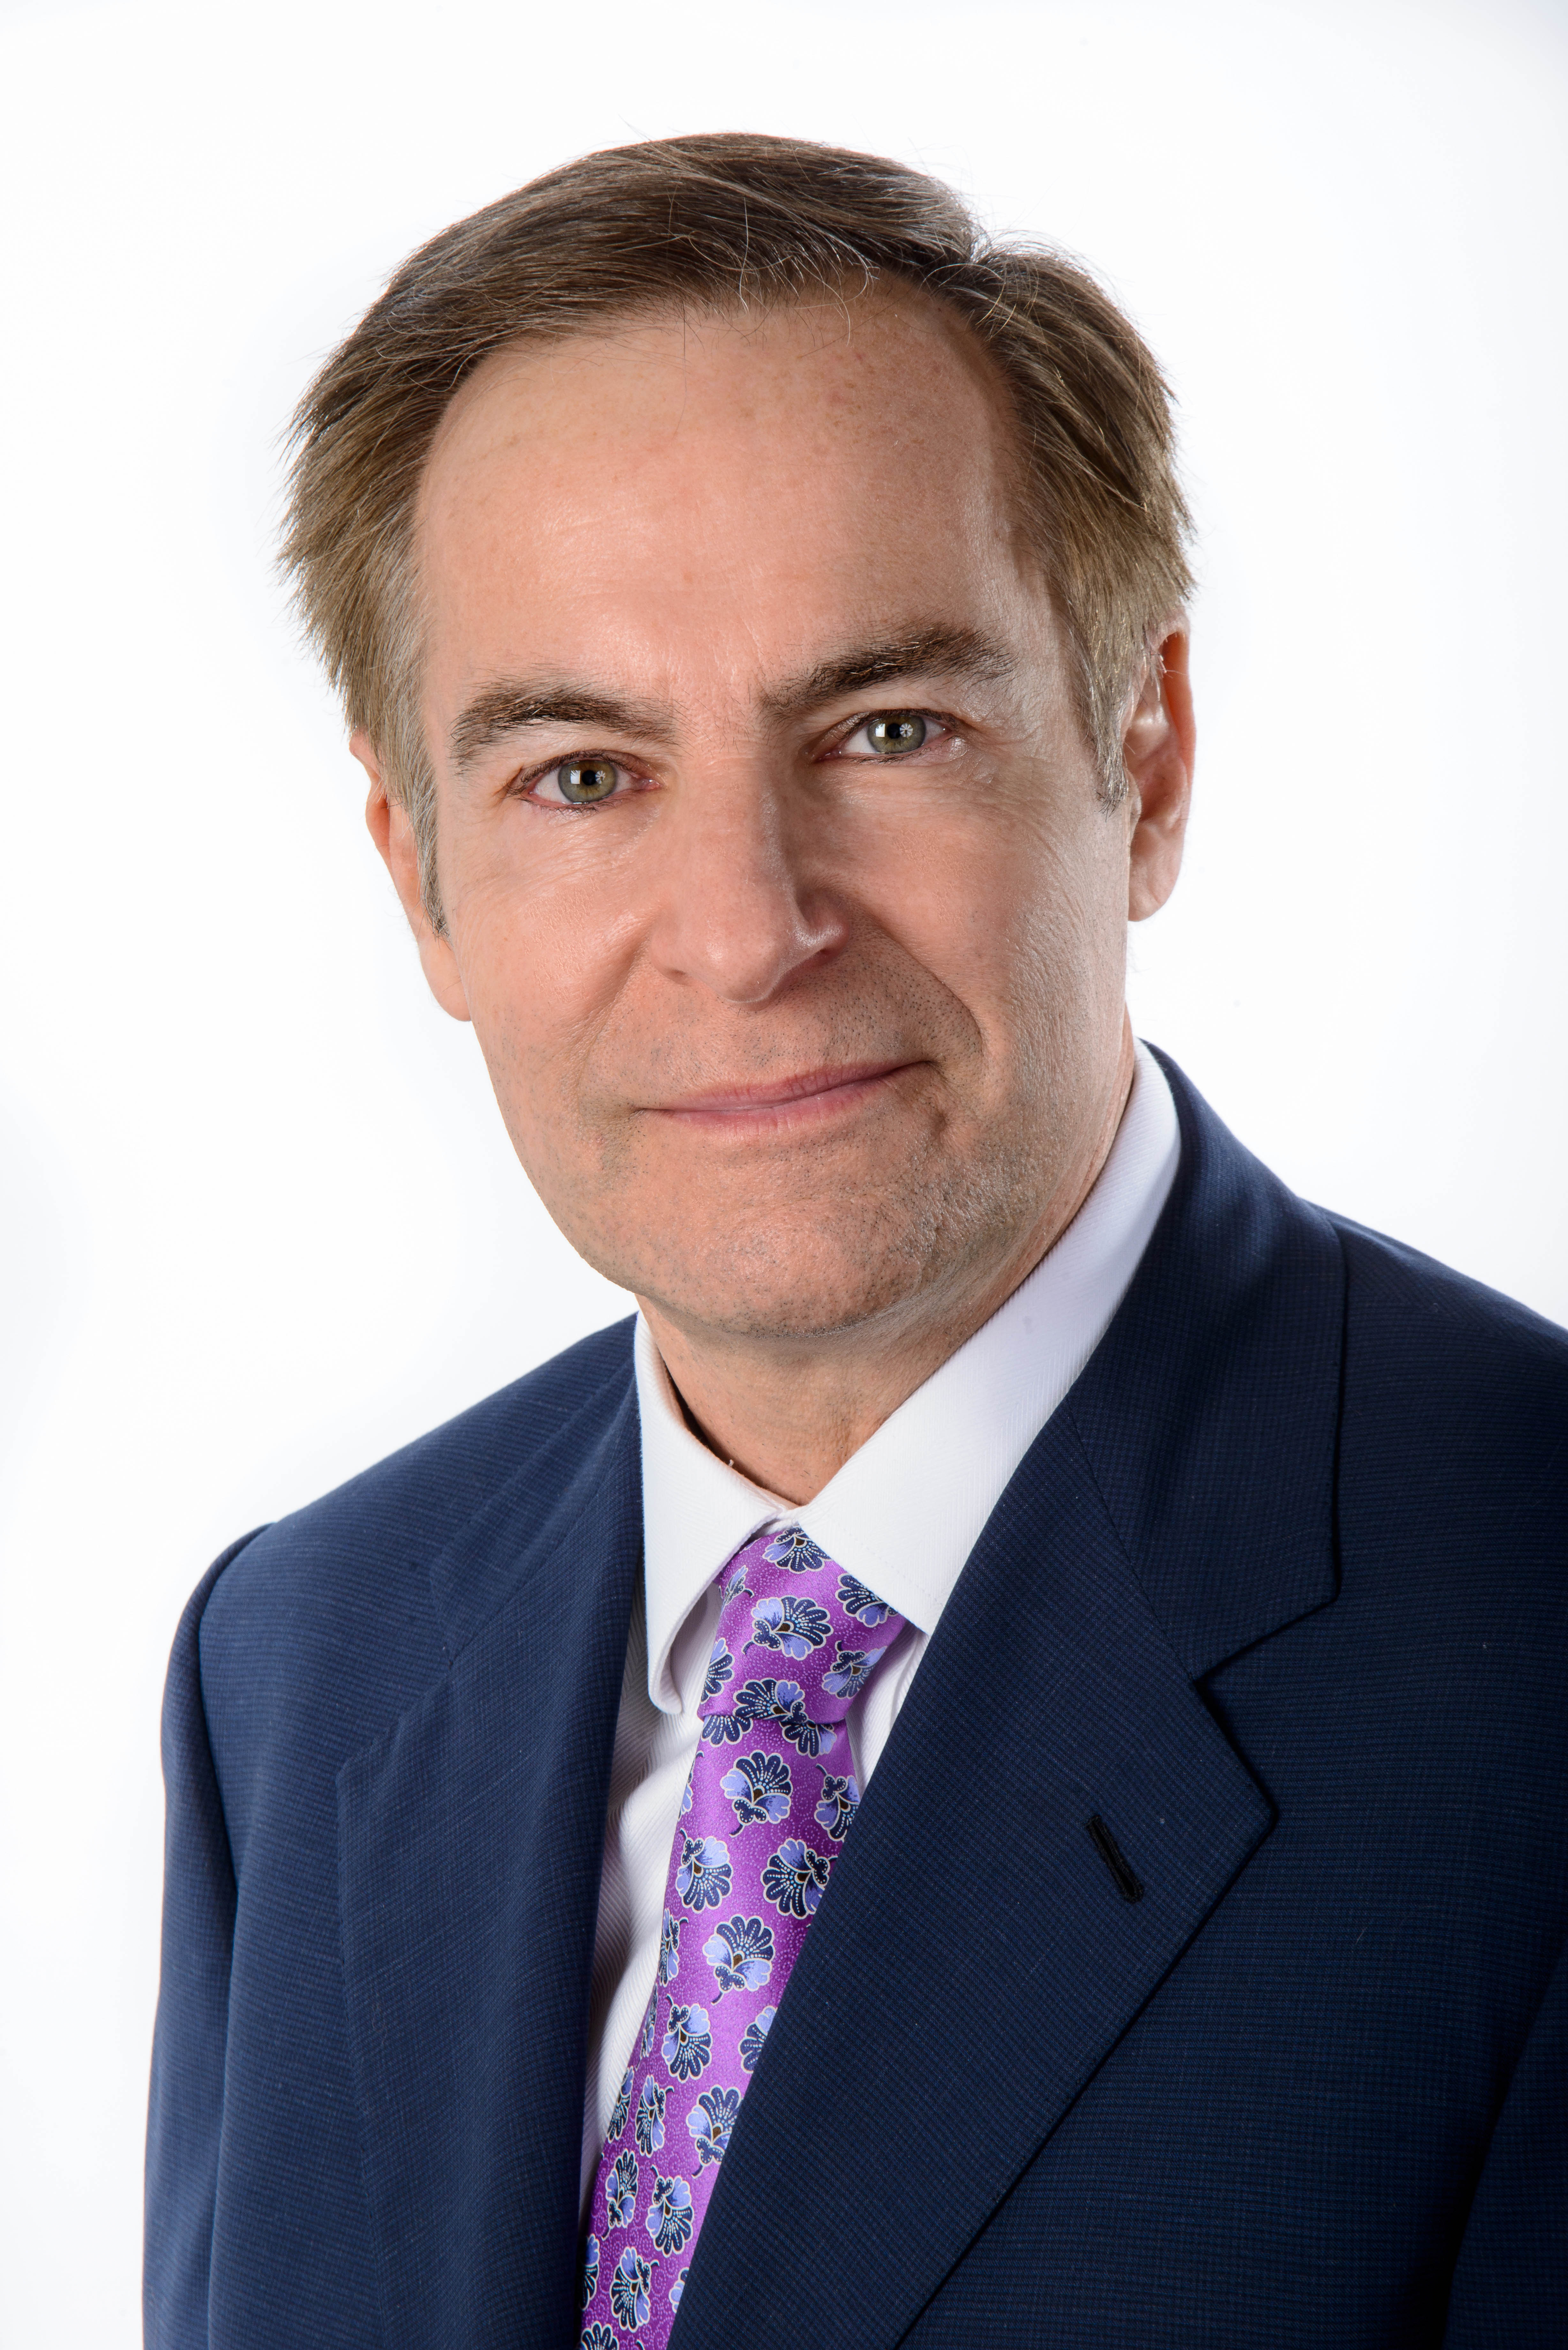 Ocean Land Properties President Jean Francois Roy Talks About His Vision For Fort Lauderdale